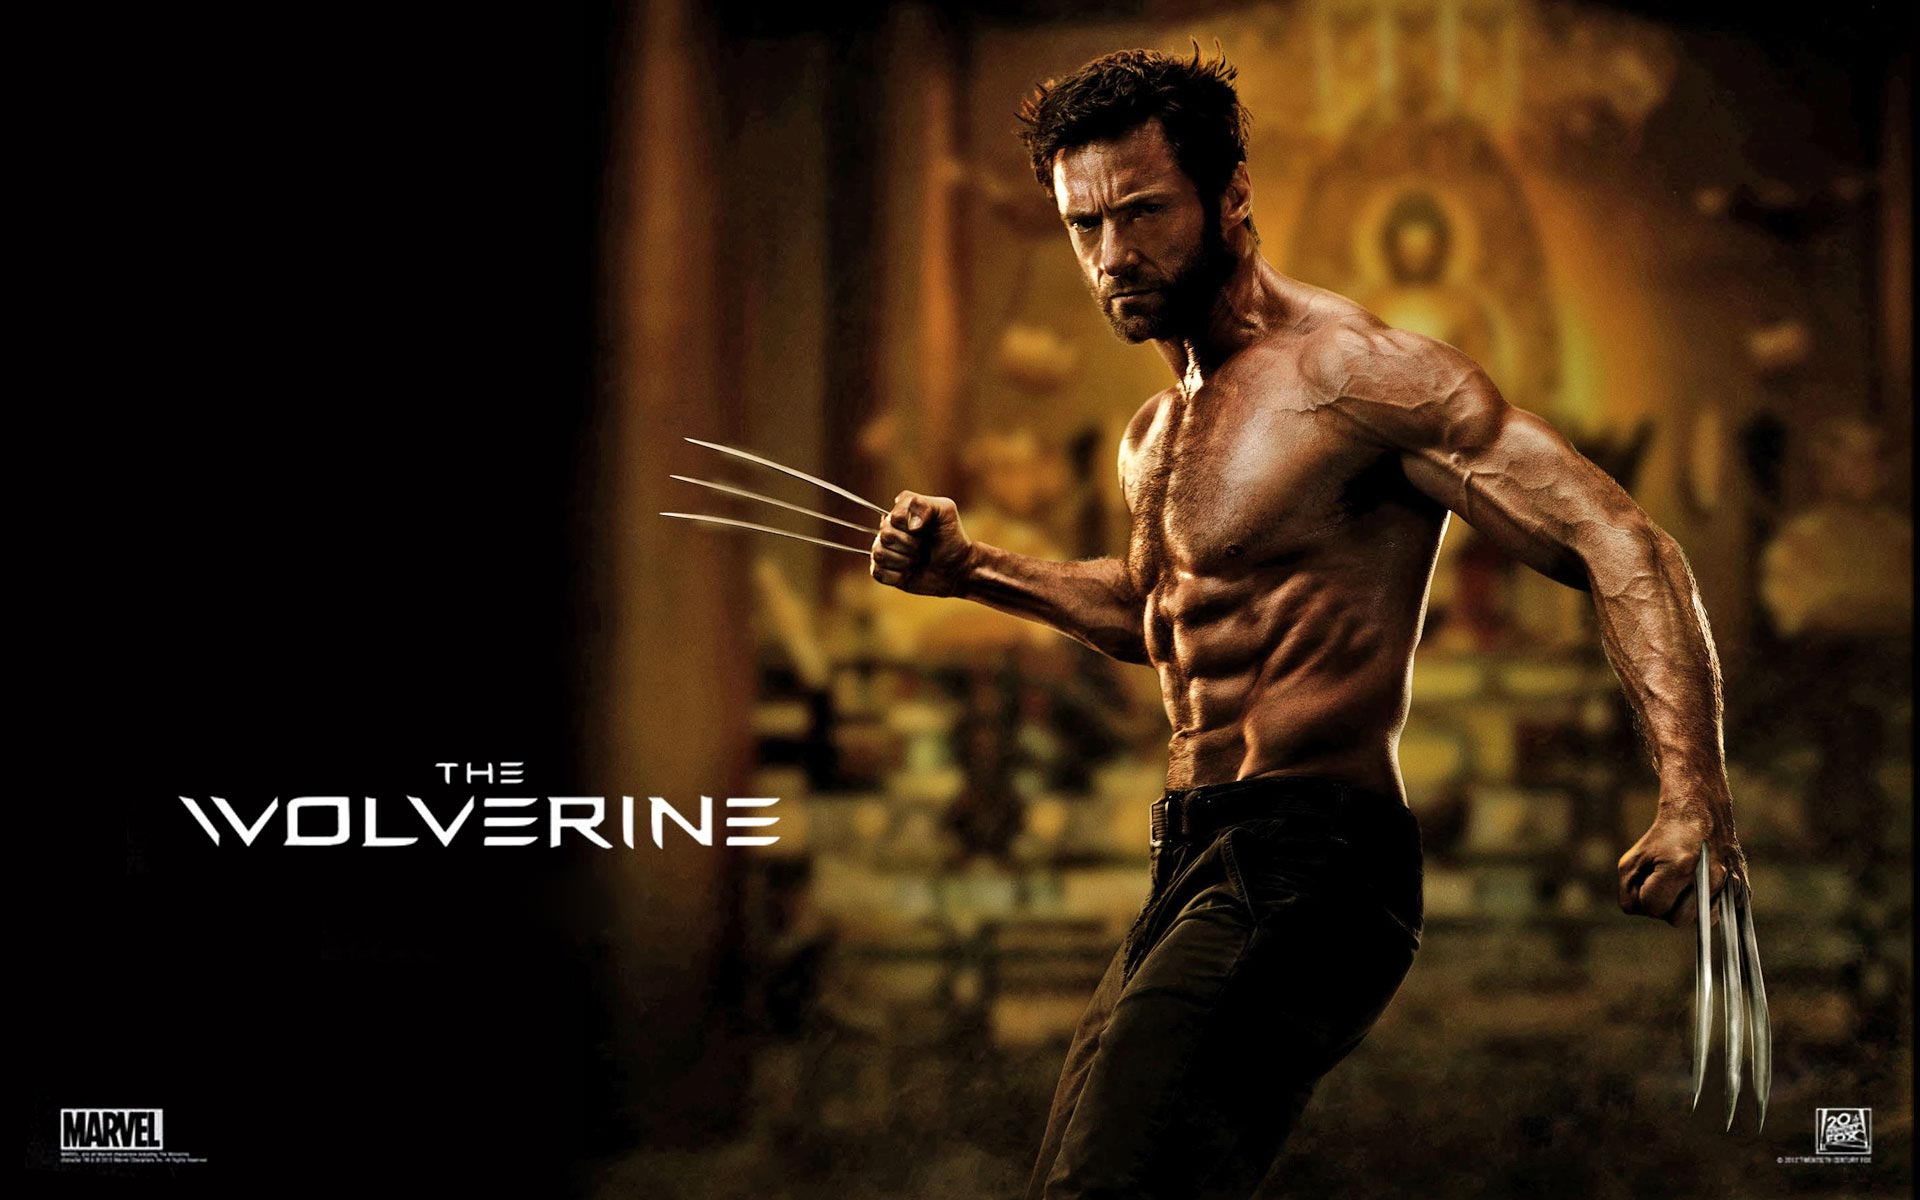 Wolverine wallpapers photos and desktop backgrounds up to 8k 7680x4320 resolution - Wallpaper wolverine 4k ...